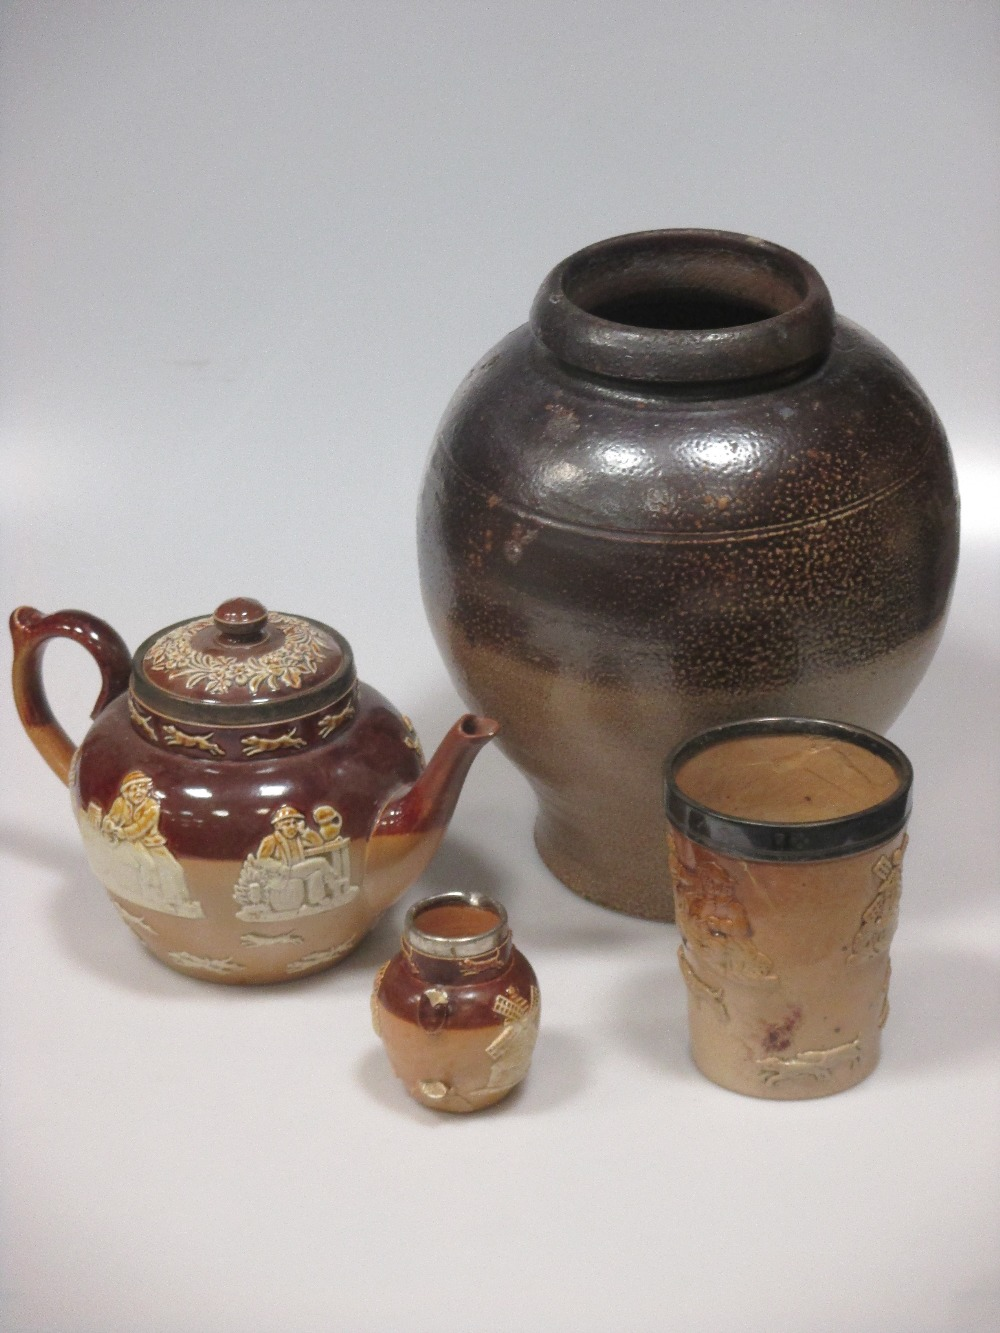 Lot 11 - An 18th century stoneware bellarmine jug (A/F), saltglazed pottery to include a jug, large jar and